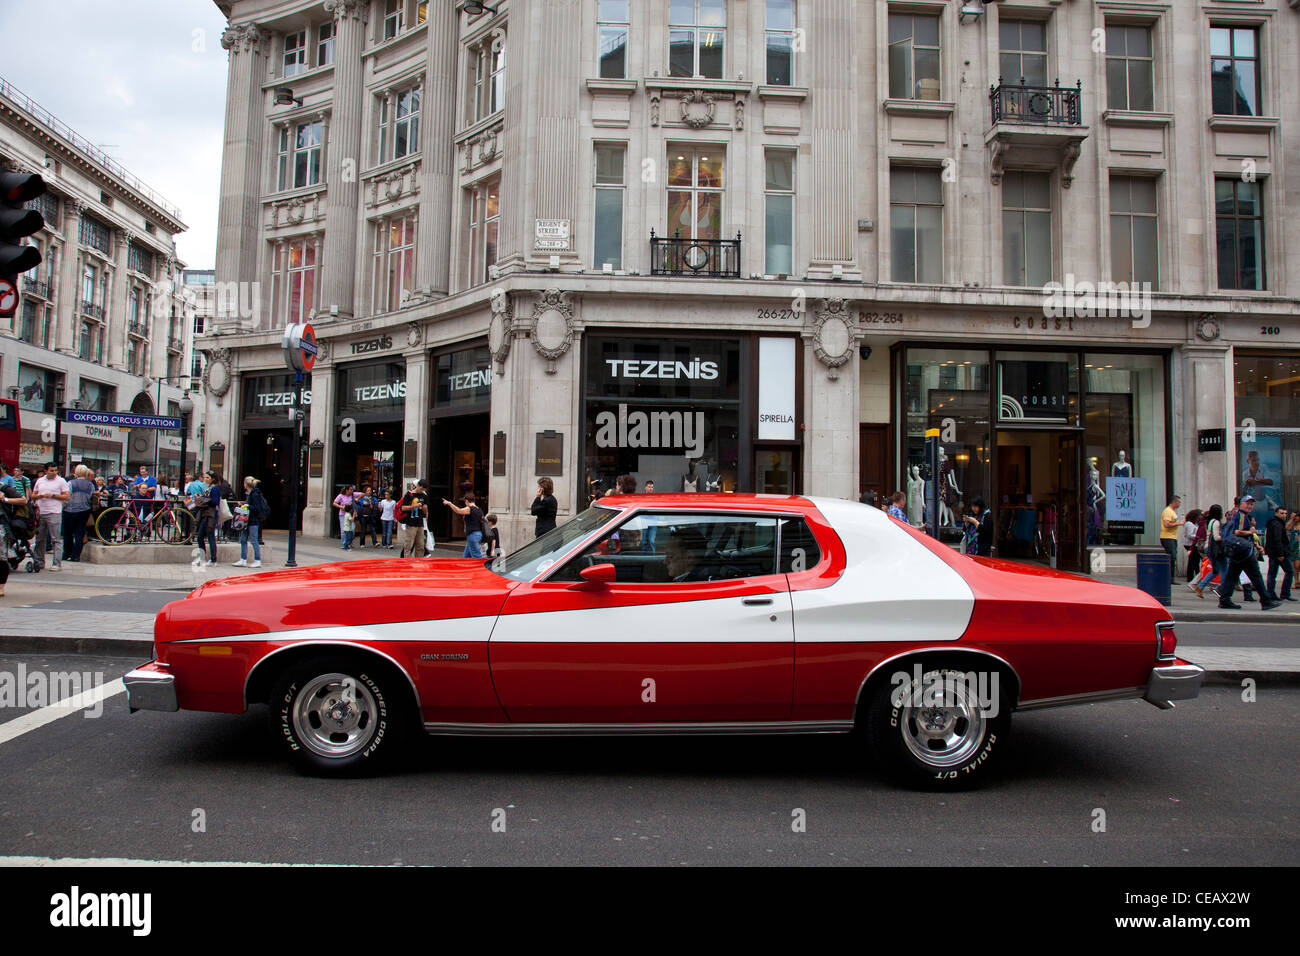 Stock Photo - The famous red car used in the hit American movie and tv show Starsky and Hutch. The Ford Gran Torino. London UK & The famous red car used in the hit American movie and tv show ... markmcfarlin.com